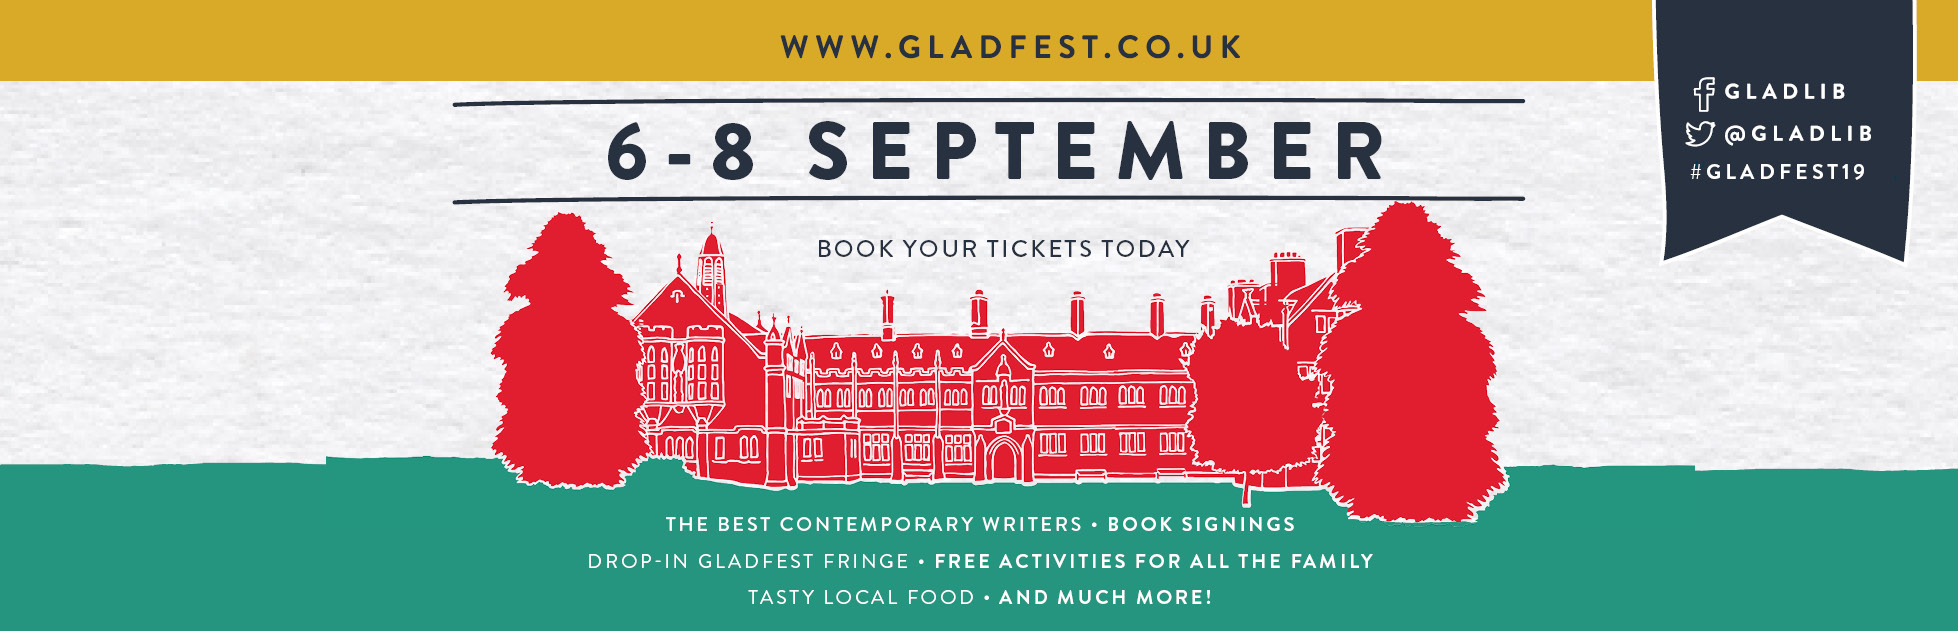 Gladfest: Book your tickets today!